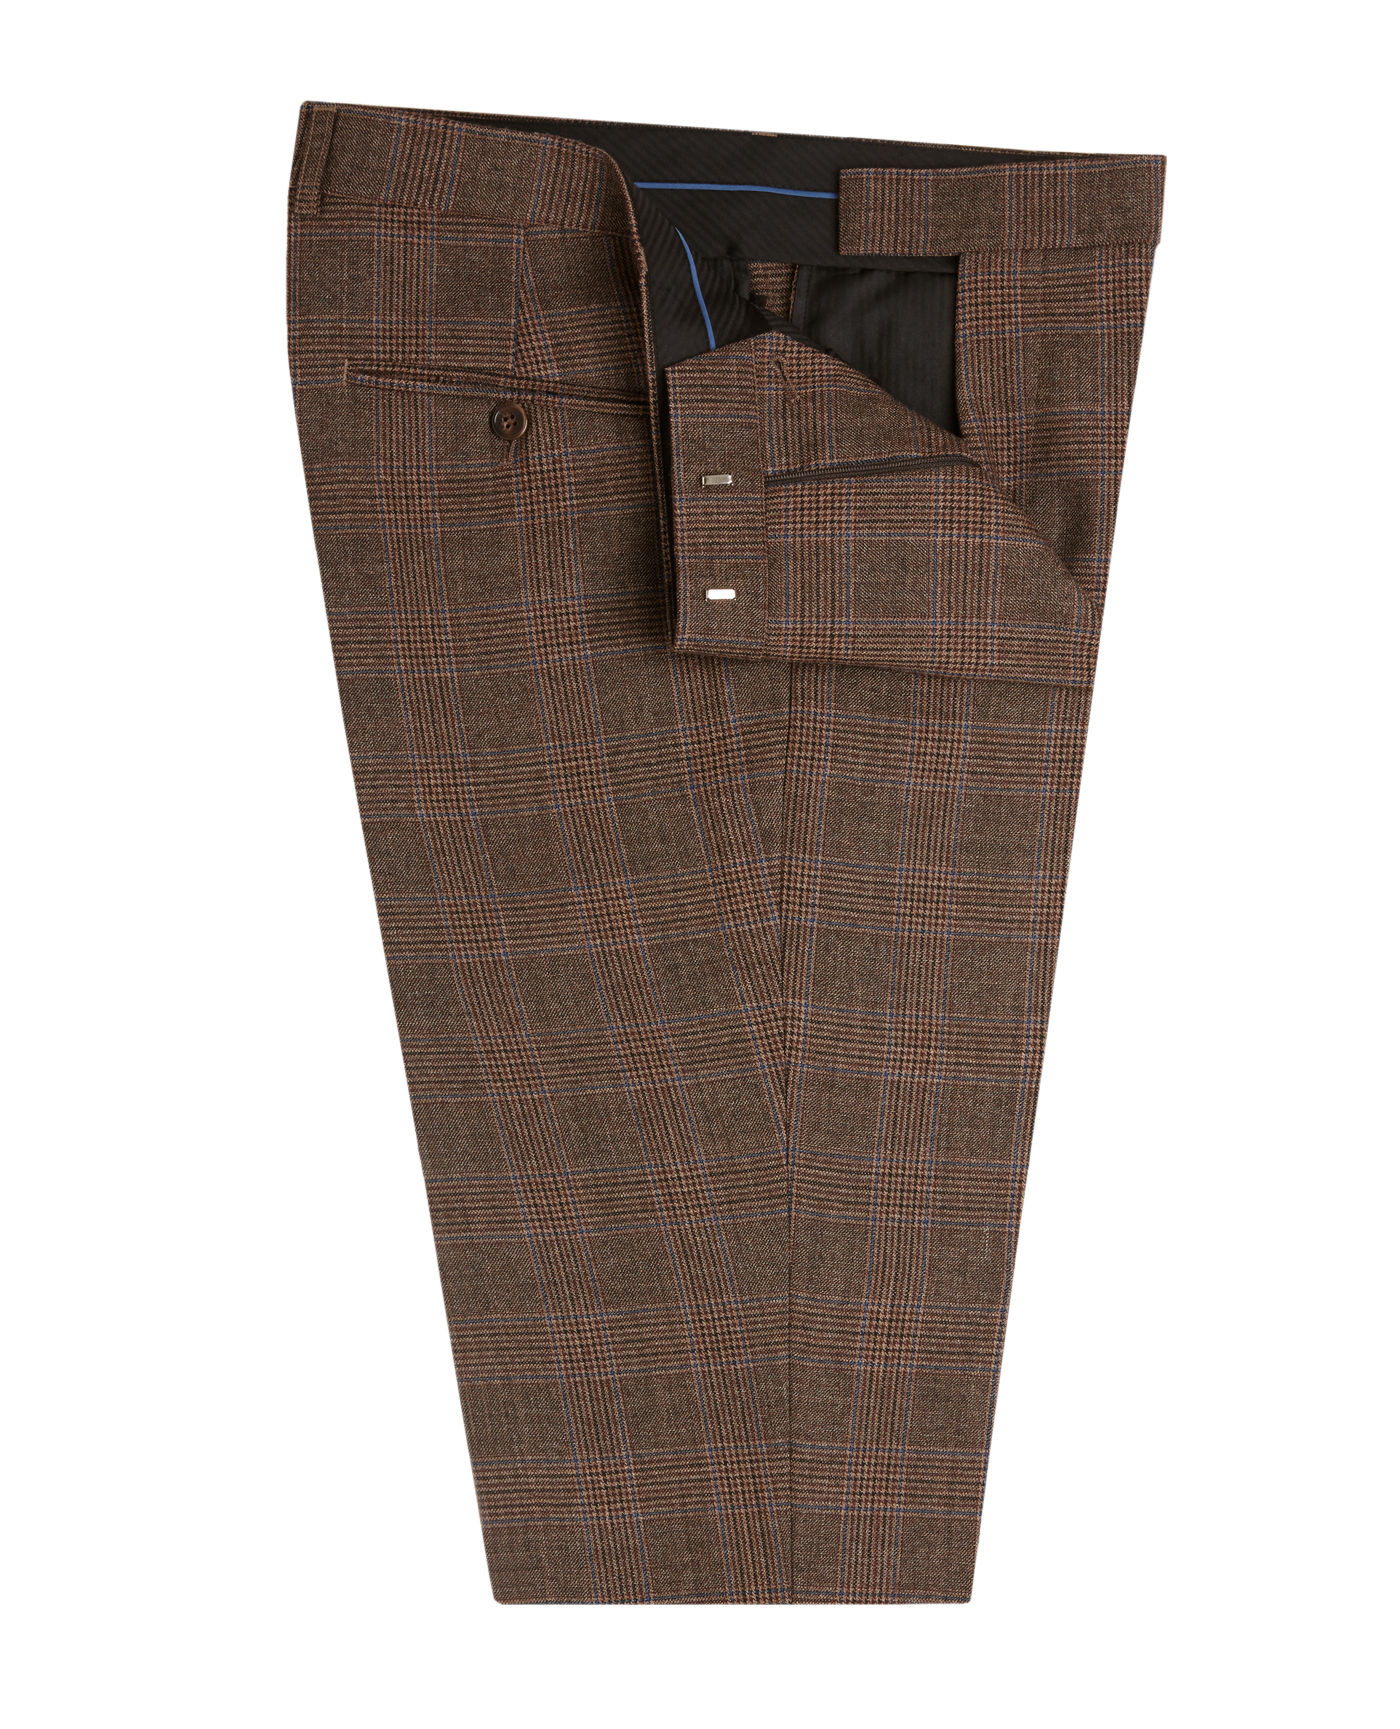 T.M.Lewin Lennon Slim Fit Suit Trousers in Taupe and Blue Check Wool